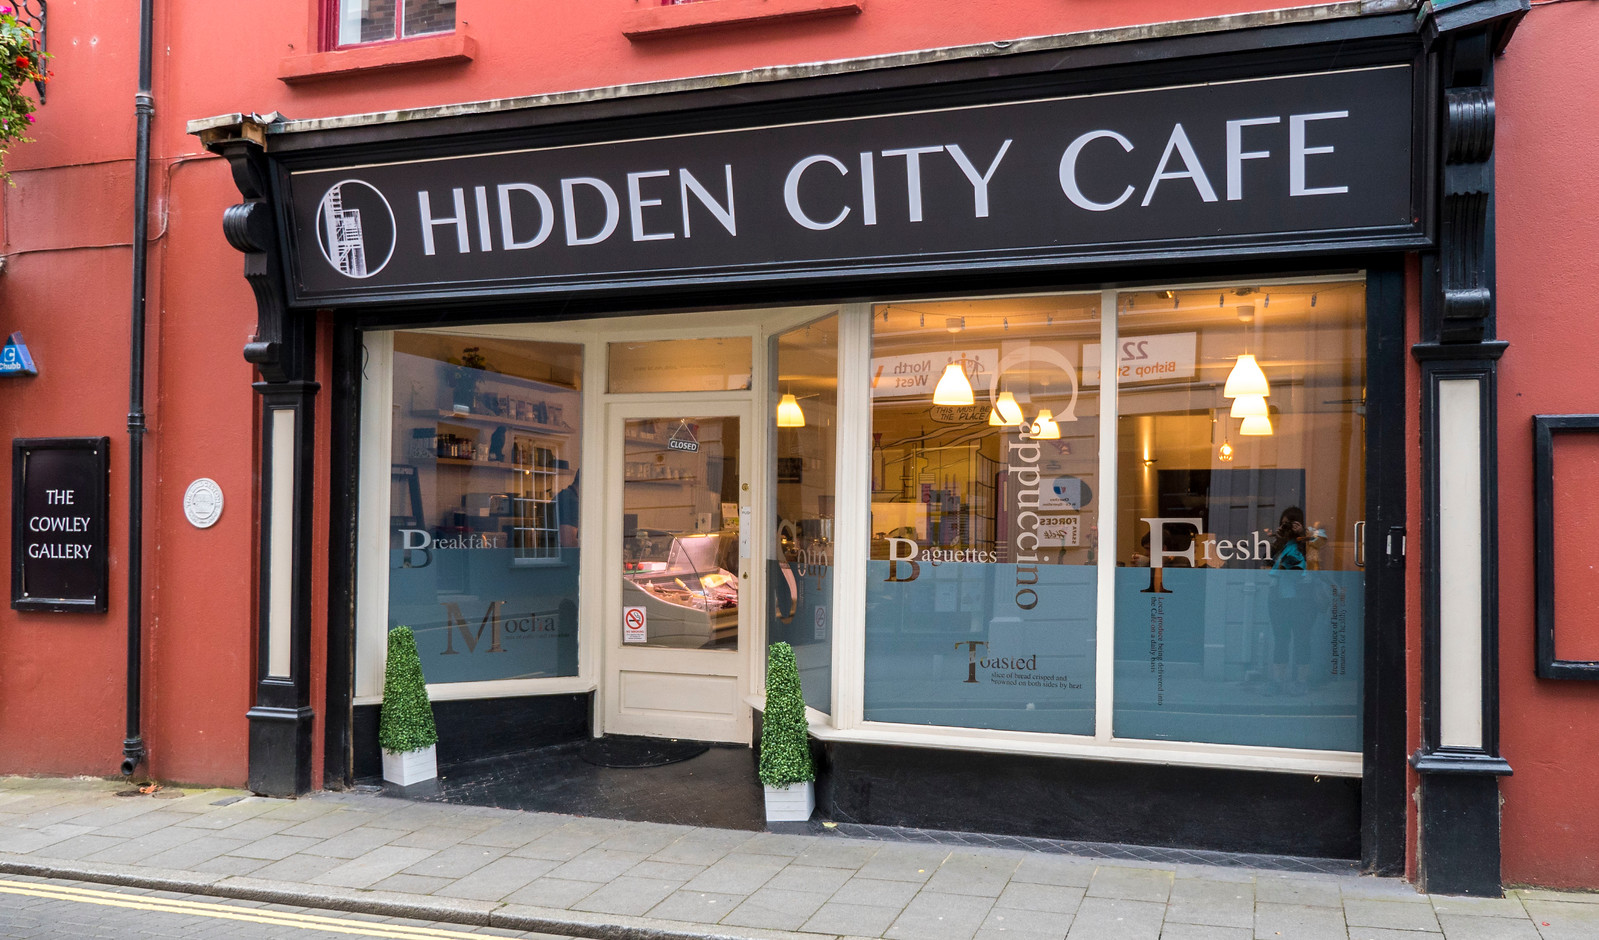 Restaurants in Derry - Vegan and Vegetarian Guide